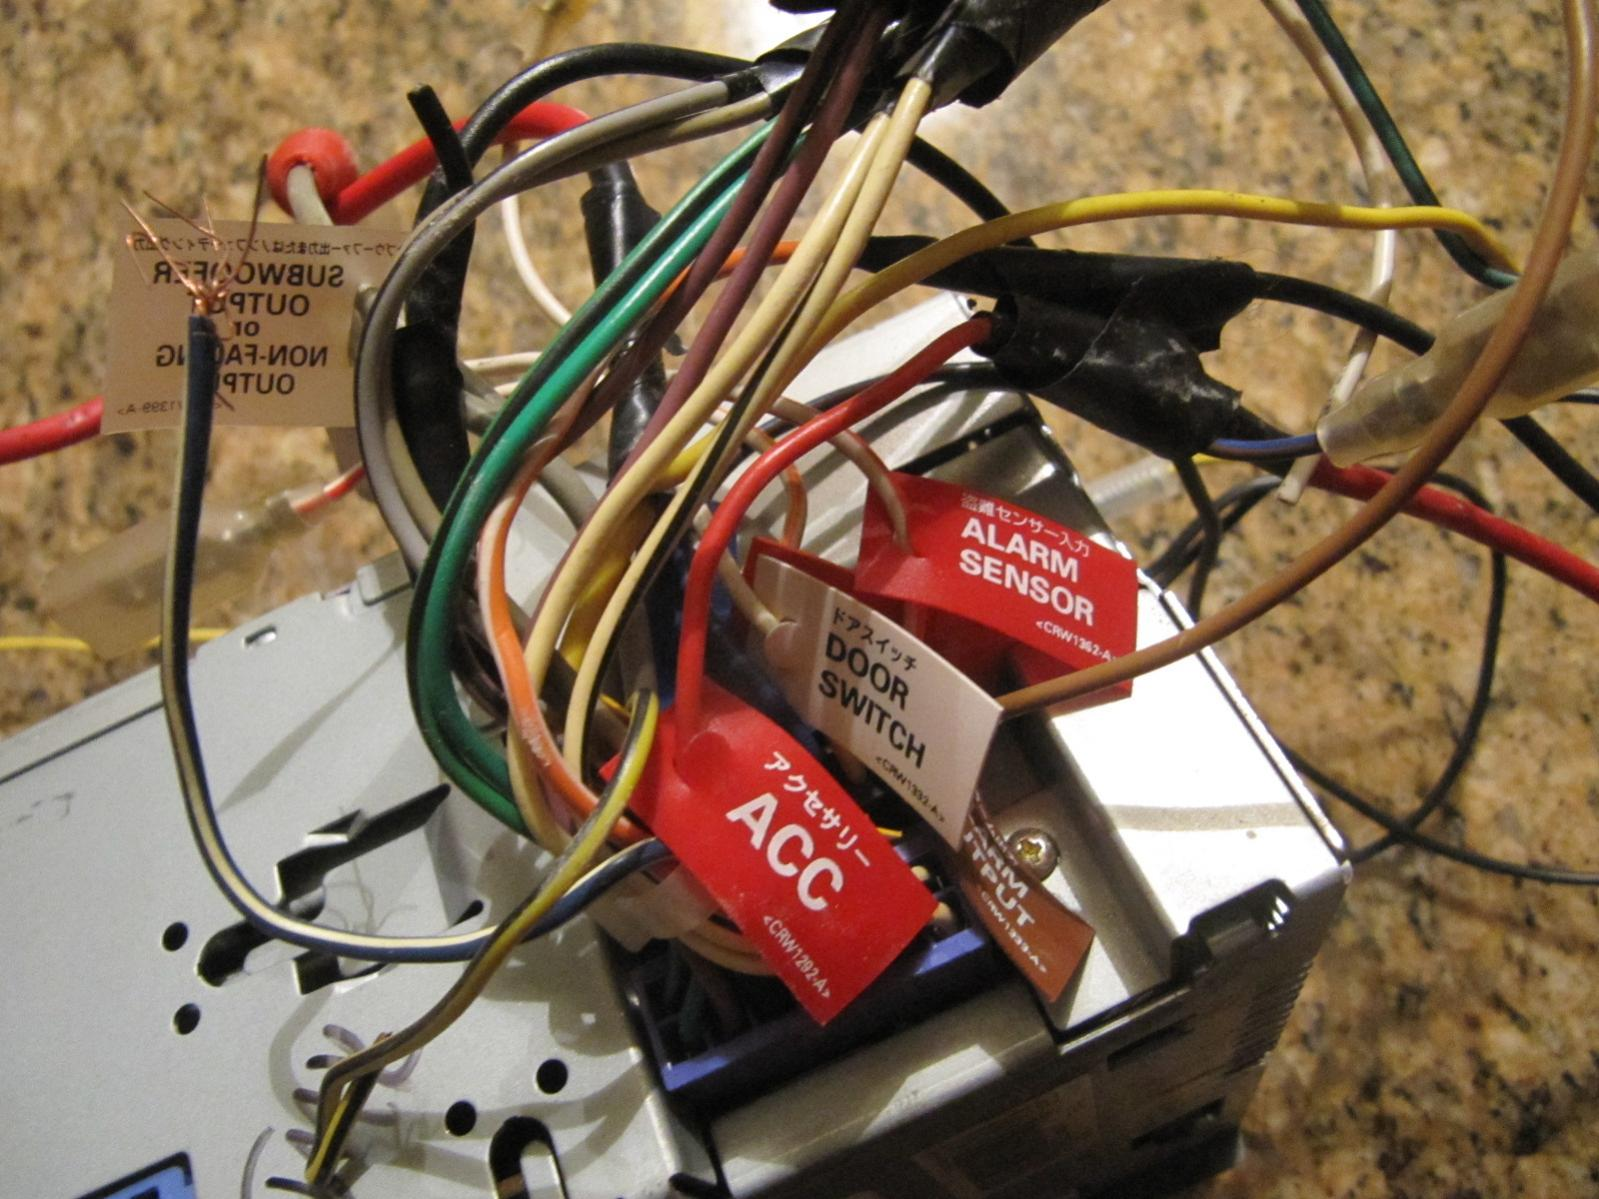 Pioneer Deh P77dh Wiring Harness Besides Lt1 Engine Wiring Harness